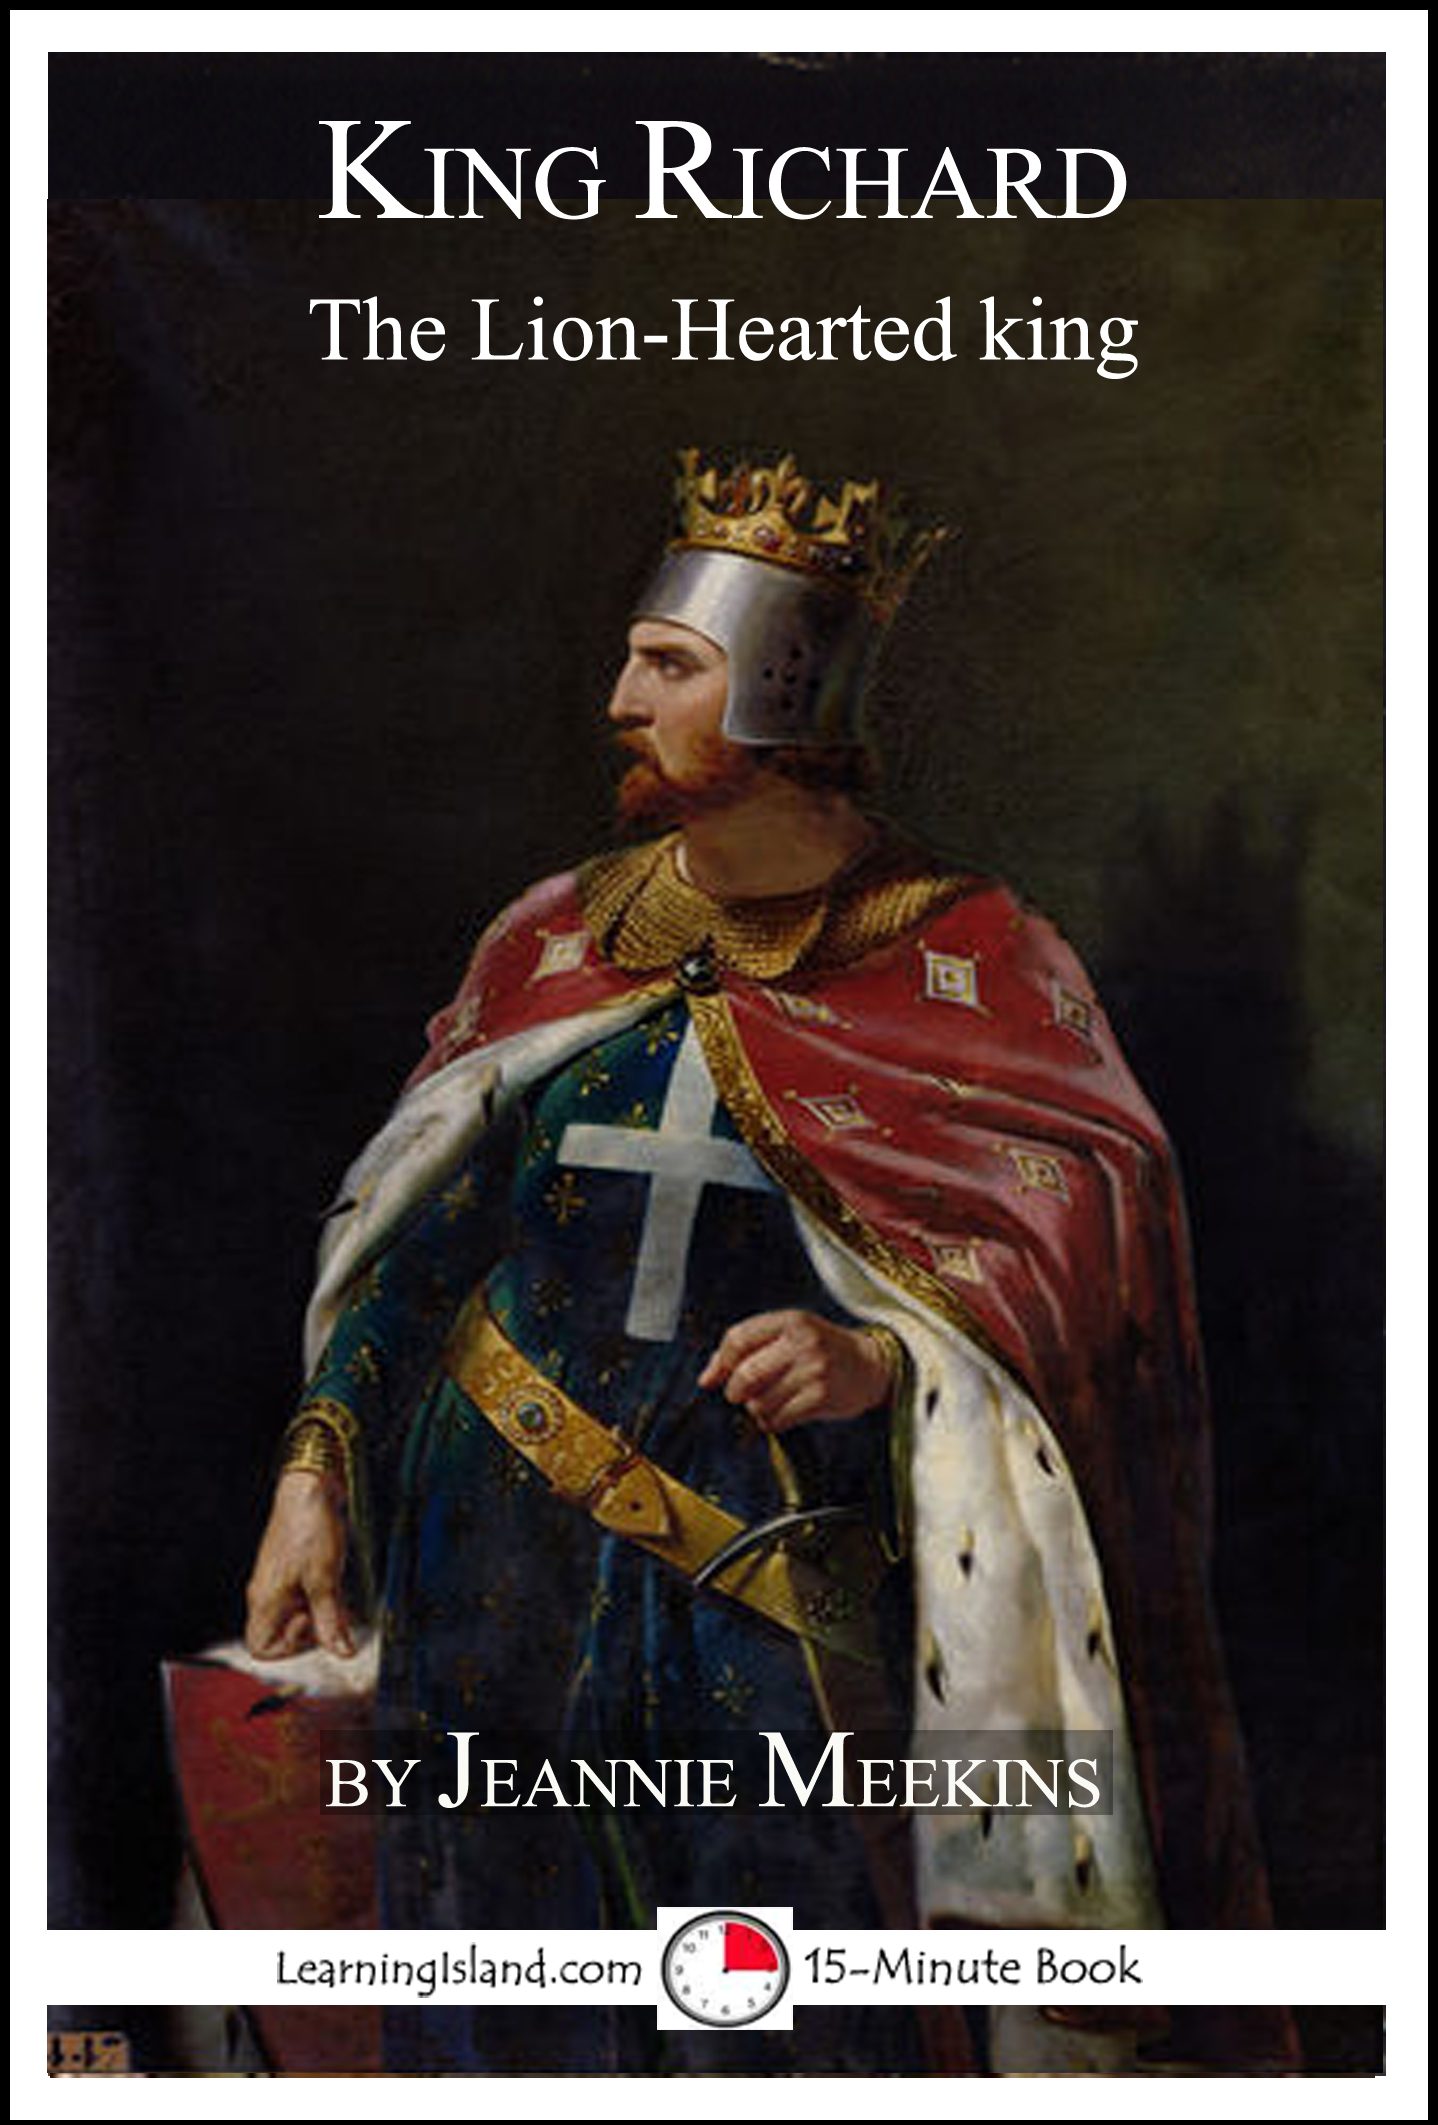 a history of the reign of richard the lion hearted a king of england Richard i, king of england and personal character of richard davis, a history of england in of chronicles and memorials of the reign of richard i.